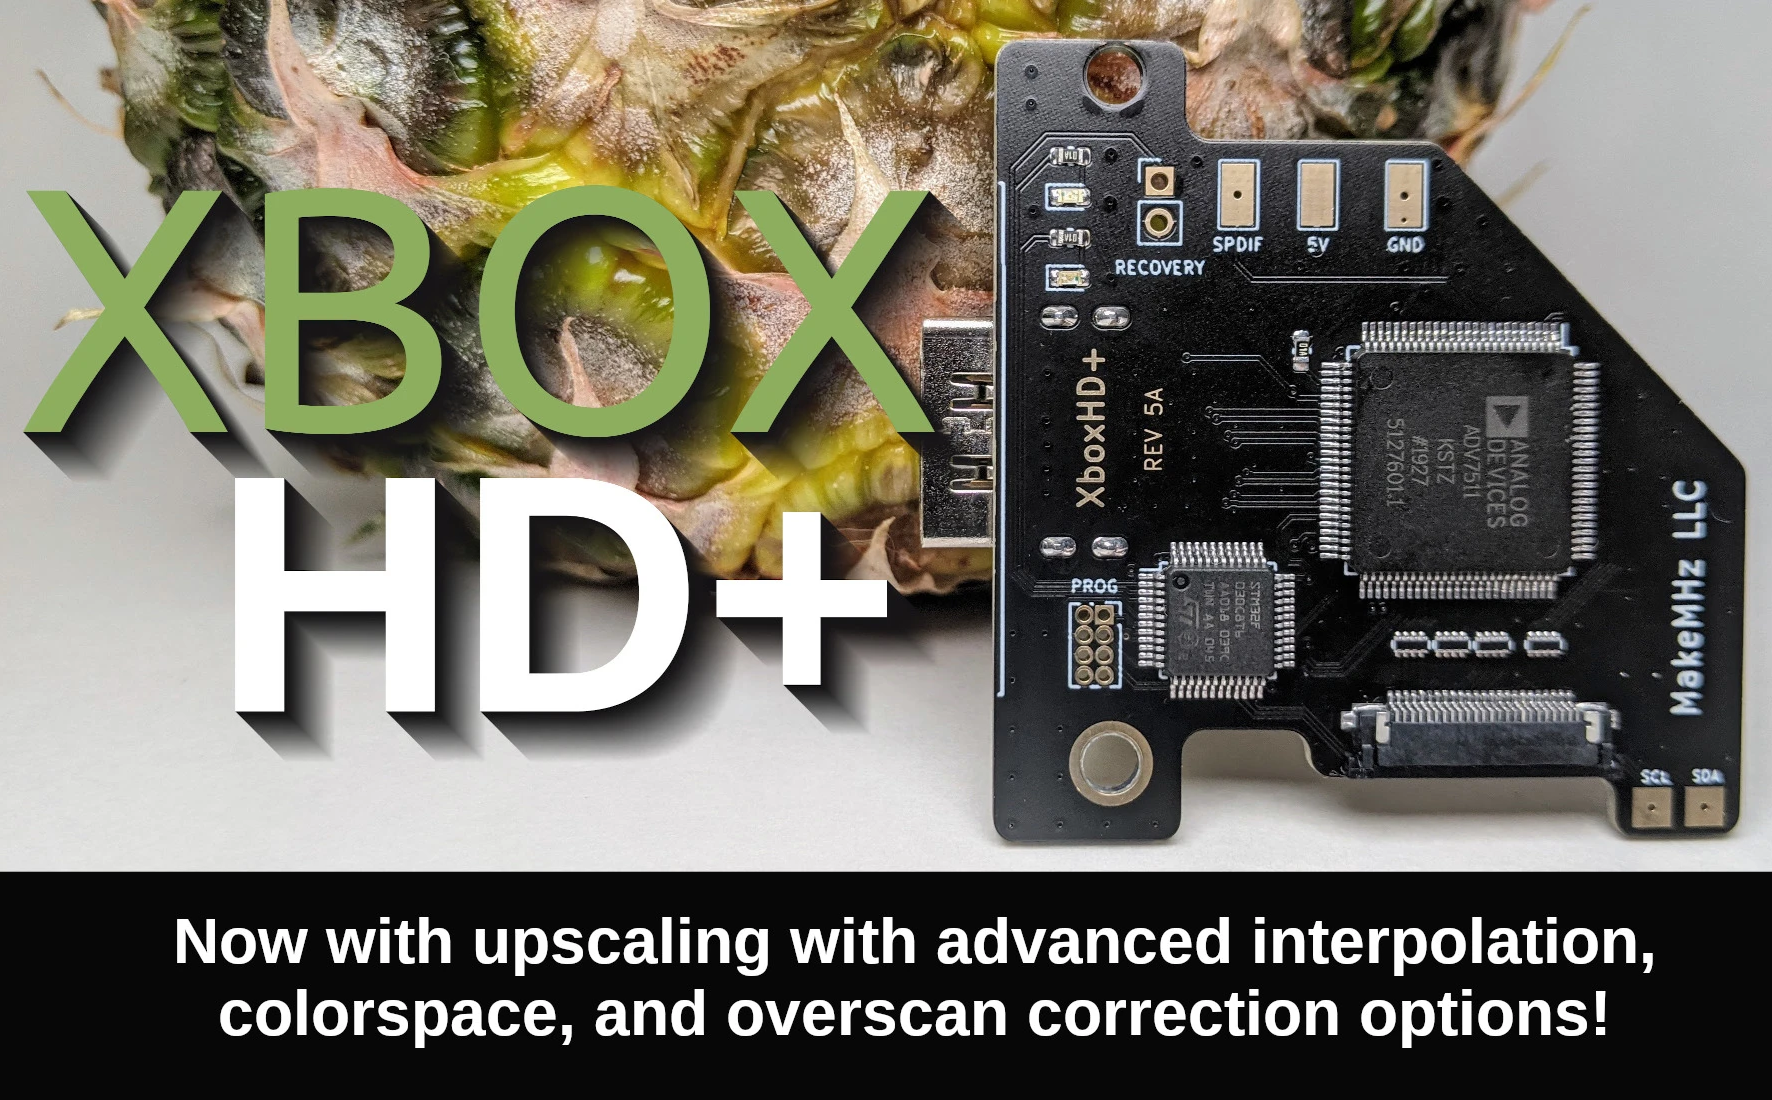 XboxHD+ Xbox HDMI Expansion Adds Scaling and New Features